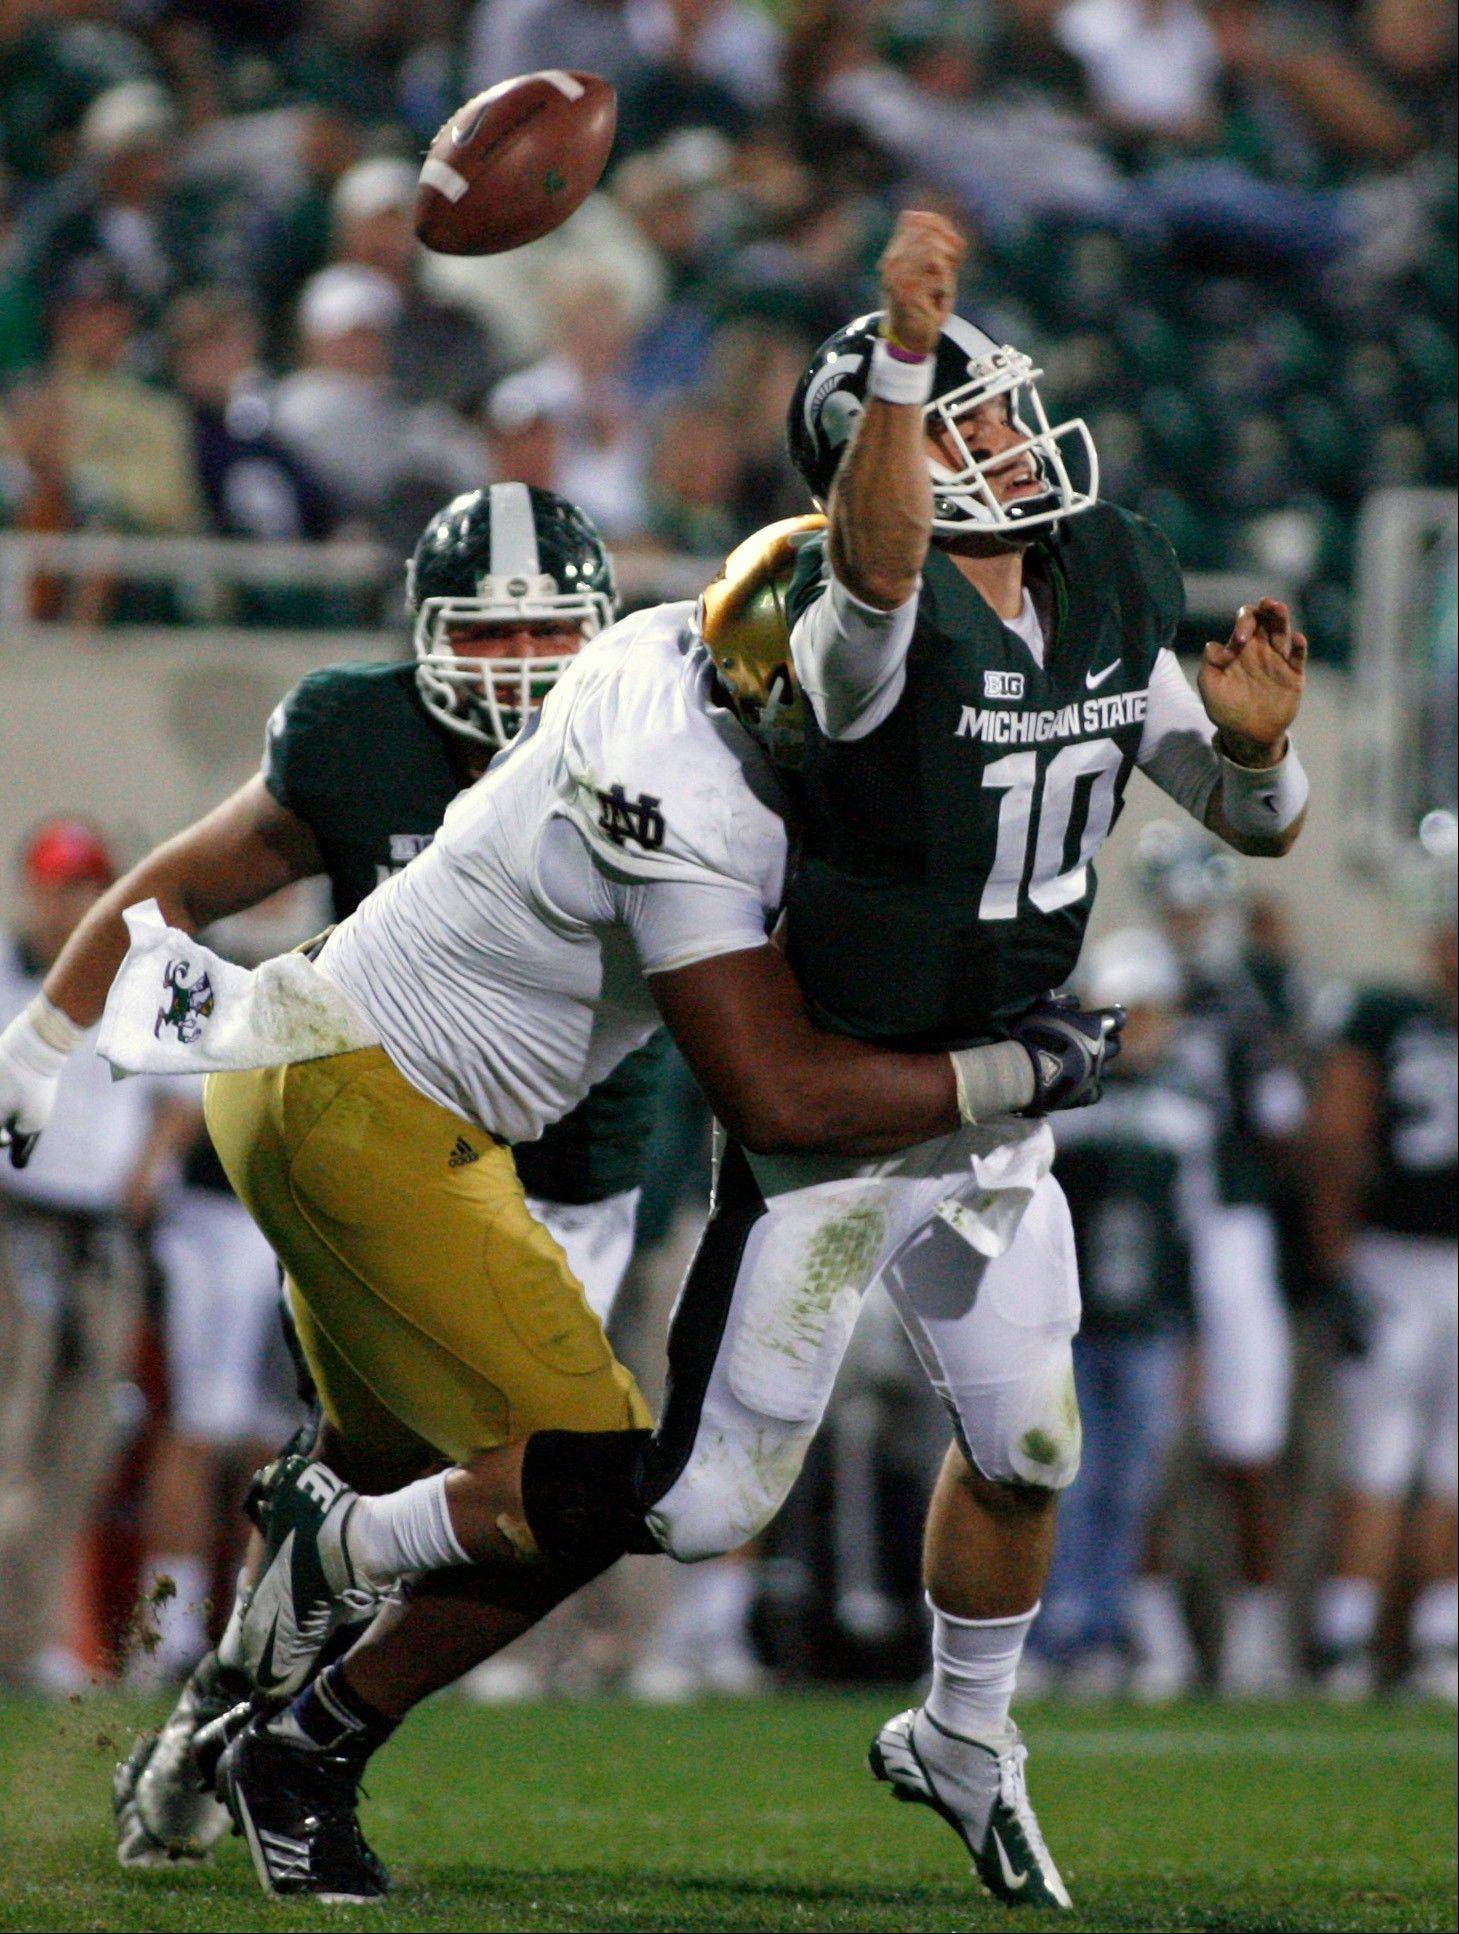 Michigan State quarterback Andrew Maxwell fumbles the ball as he is hit by Notre Dame's T.J. Jones on Sept. 15, 2012. Maxwell completed only 52.5 percent of his passes last season.